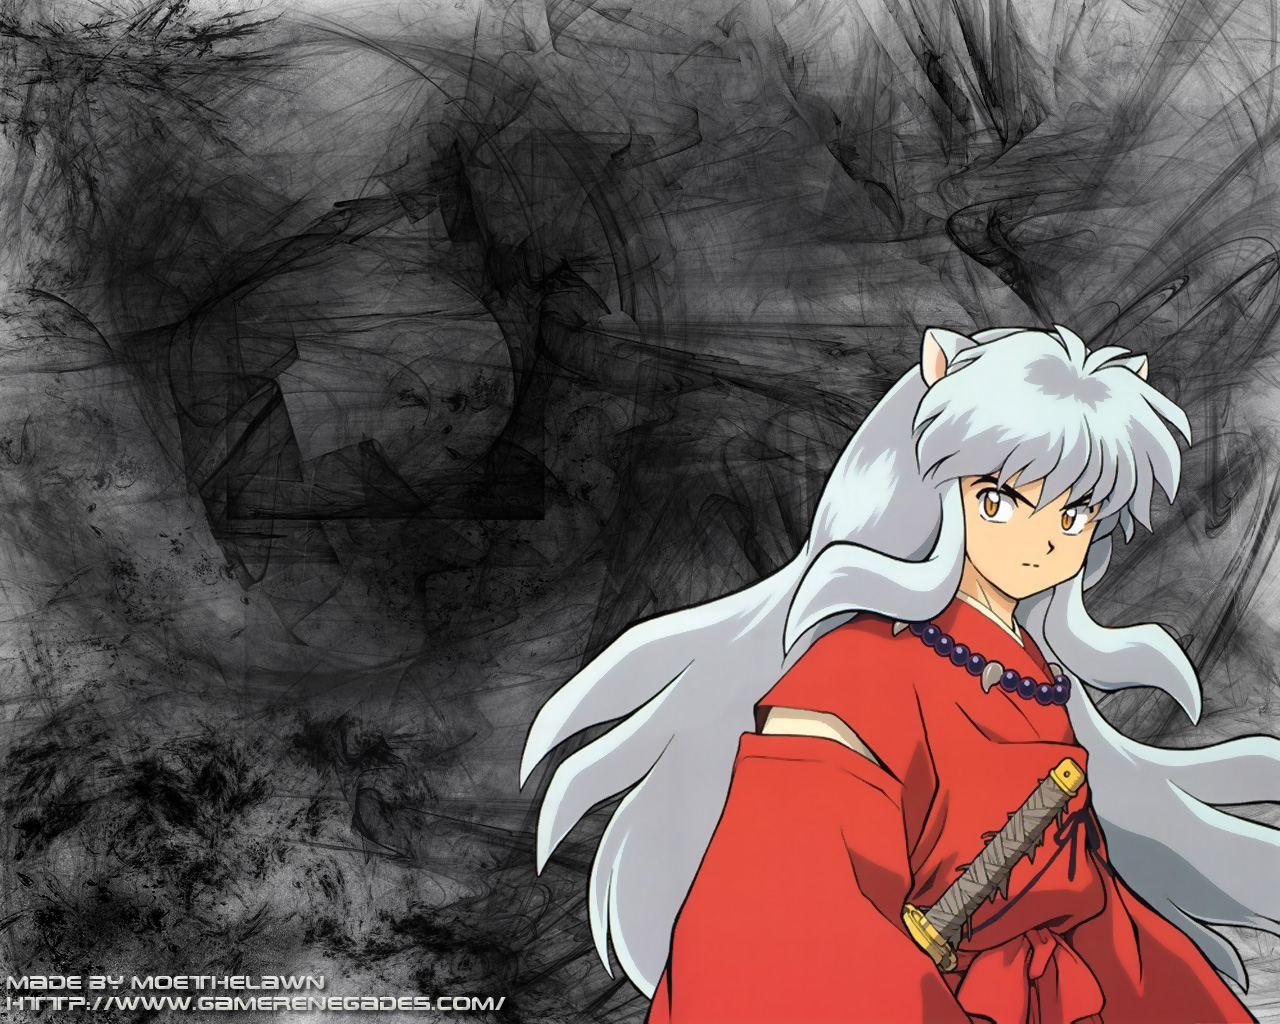 pic new posts: Wallpaper Hd Inuyasha